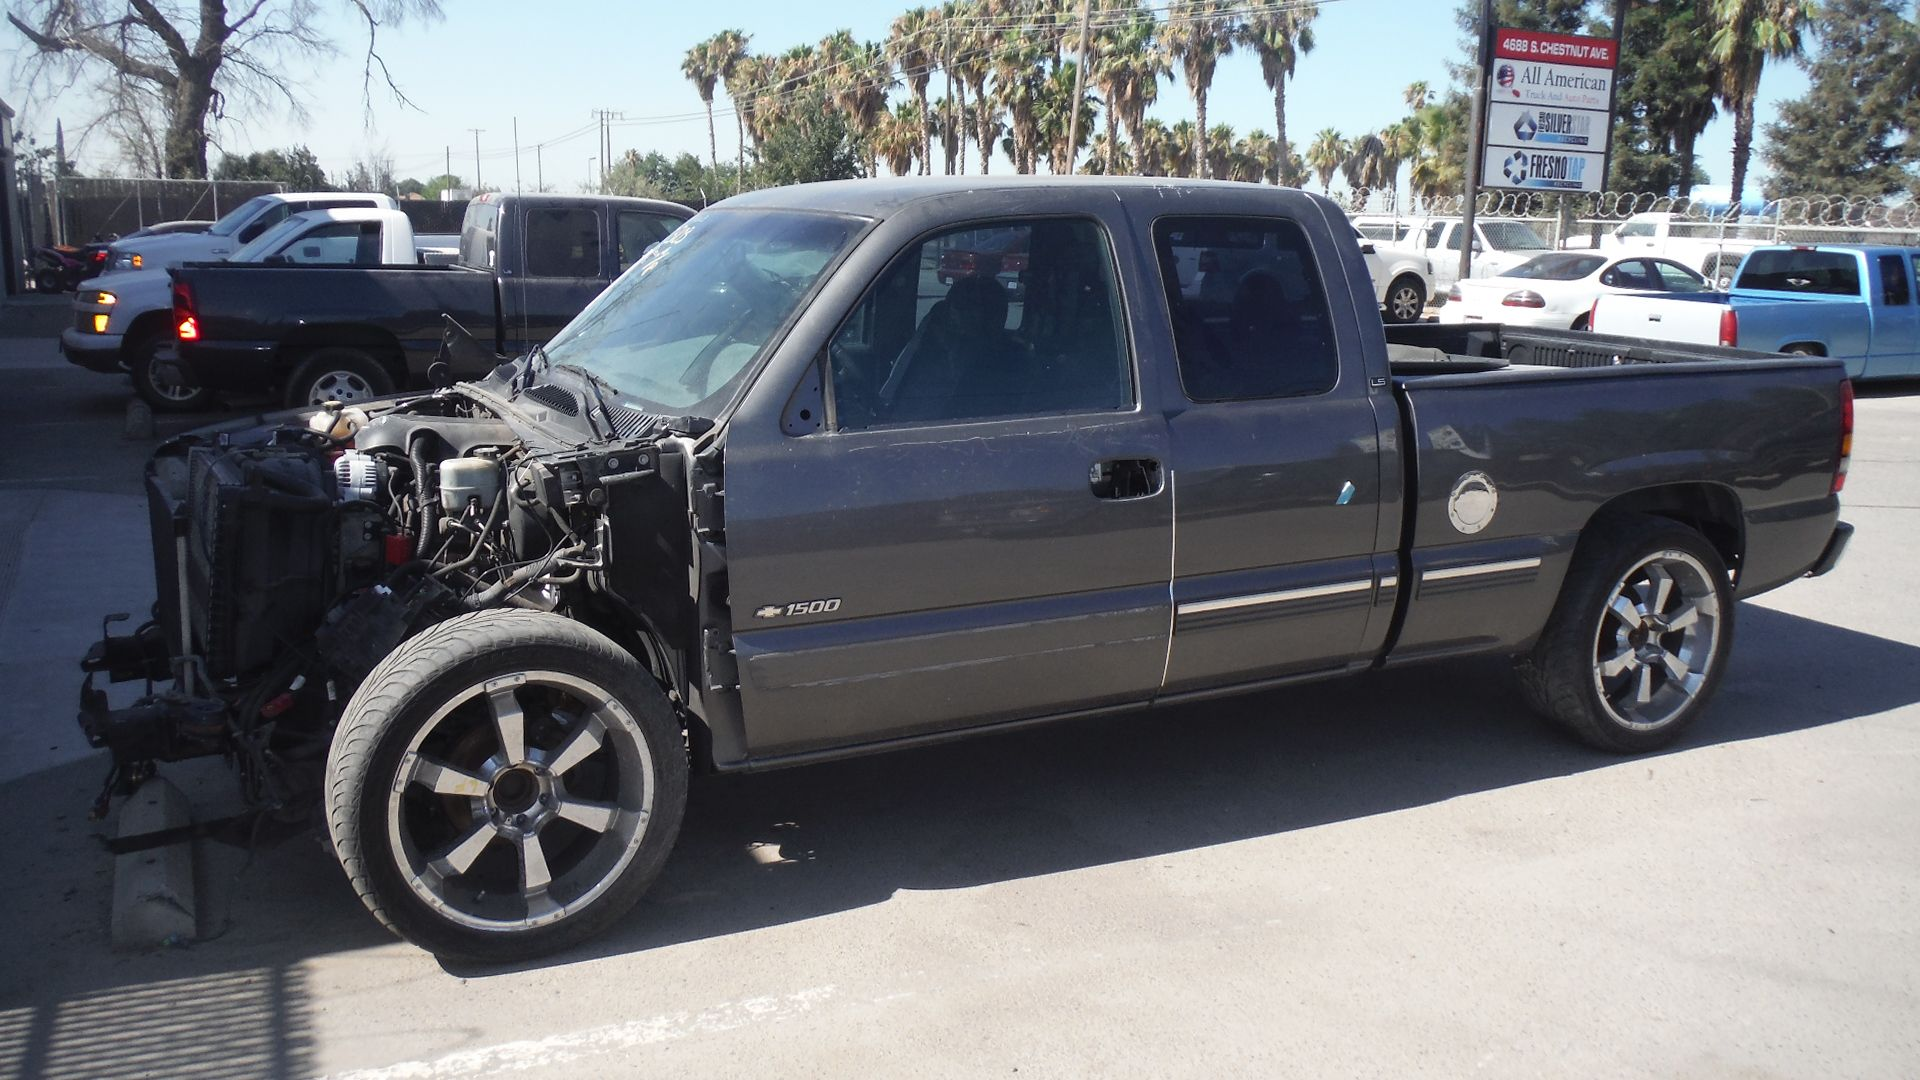 2001 chevy silverado 1500 ls extended cab short bed 2wd 4 8l with unknown miles